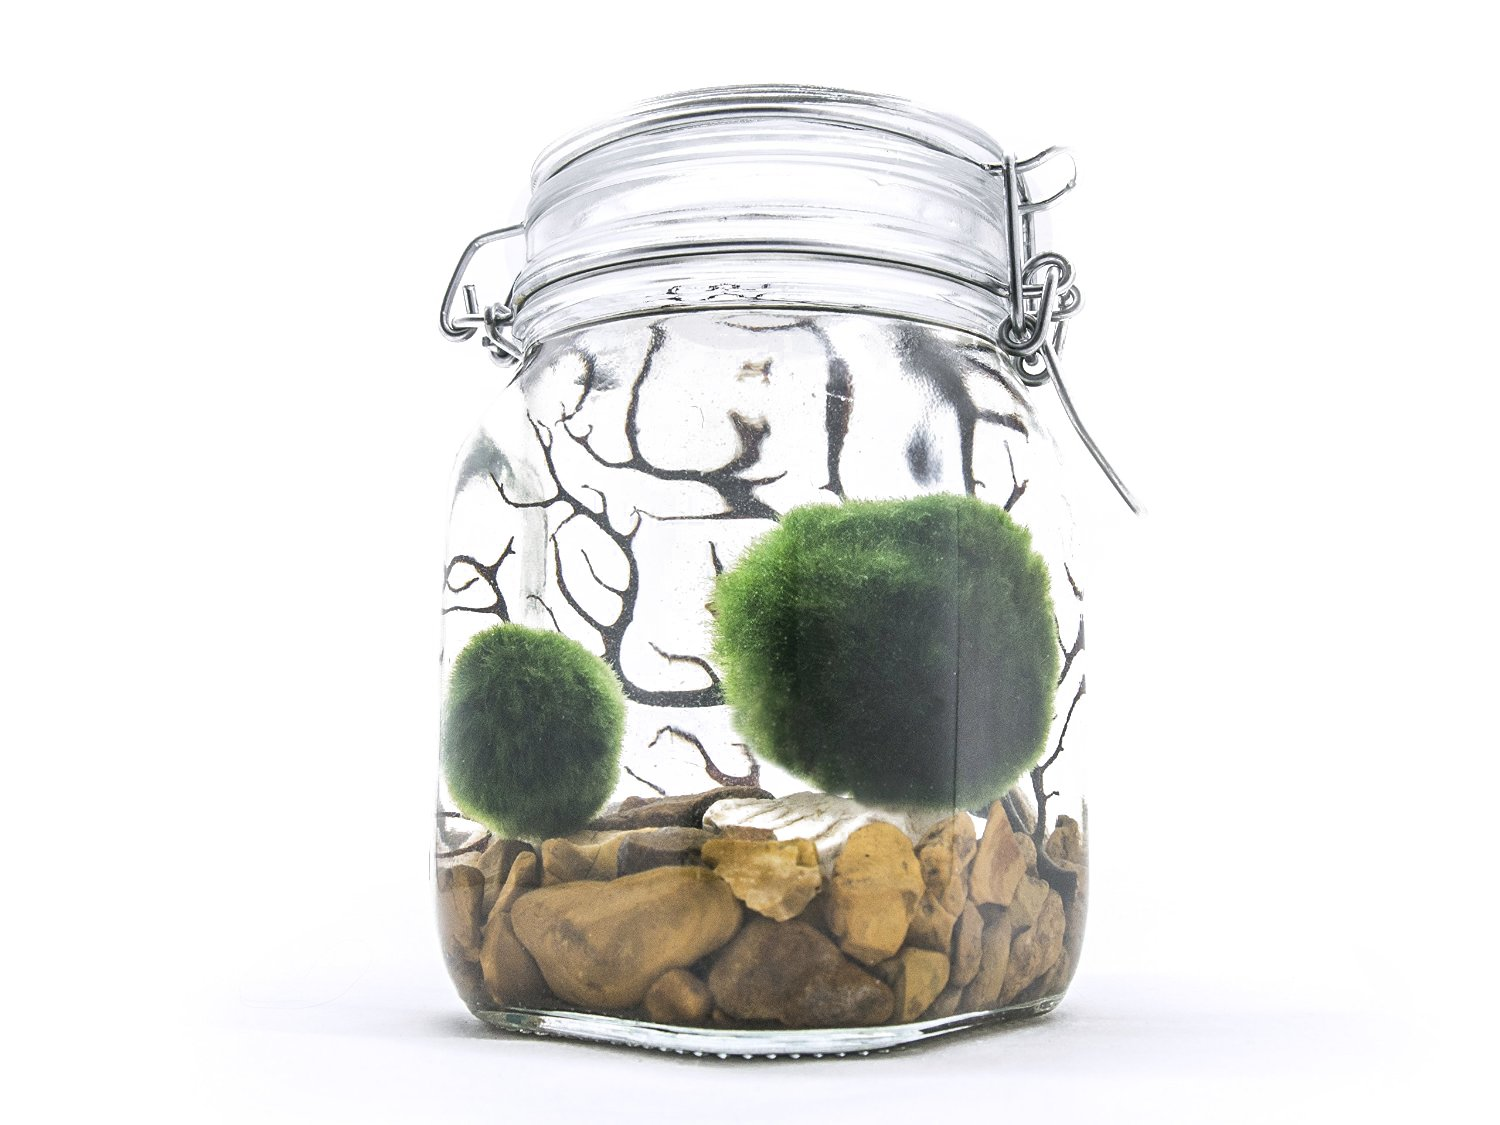 Aquatic Arts Terrarium Kit With Live Marimo Moss Balls - Large Glass Bottle Starter Set for Easy Indoor Plant Terrariums - Natural Centerpiece for Home Decor/Unique Gift Ideas by by Aquatic Arts